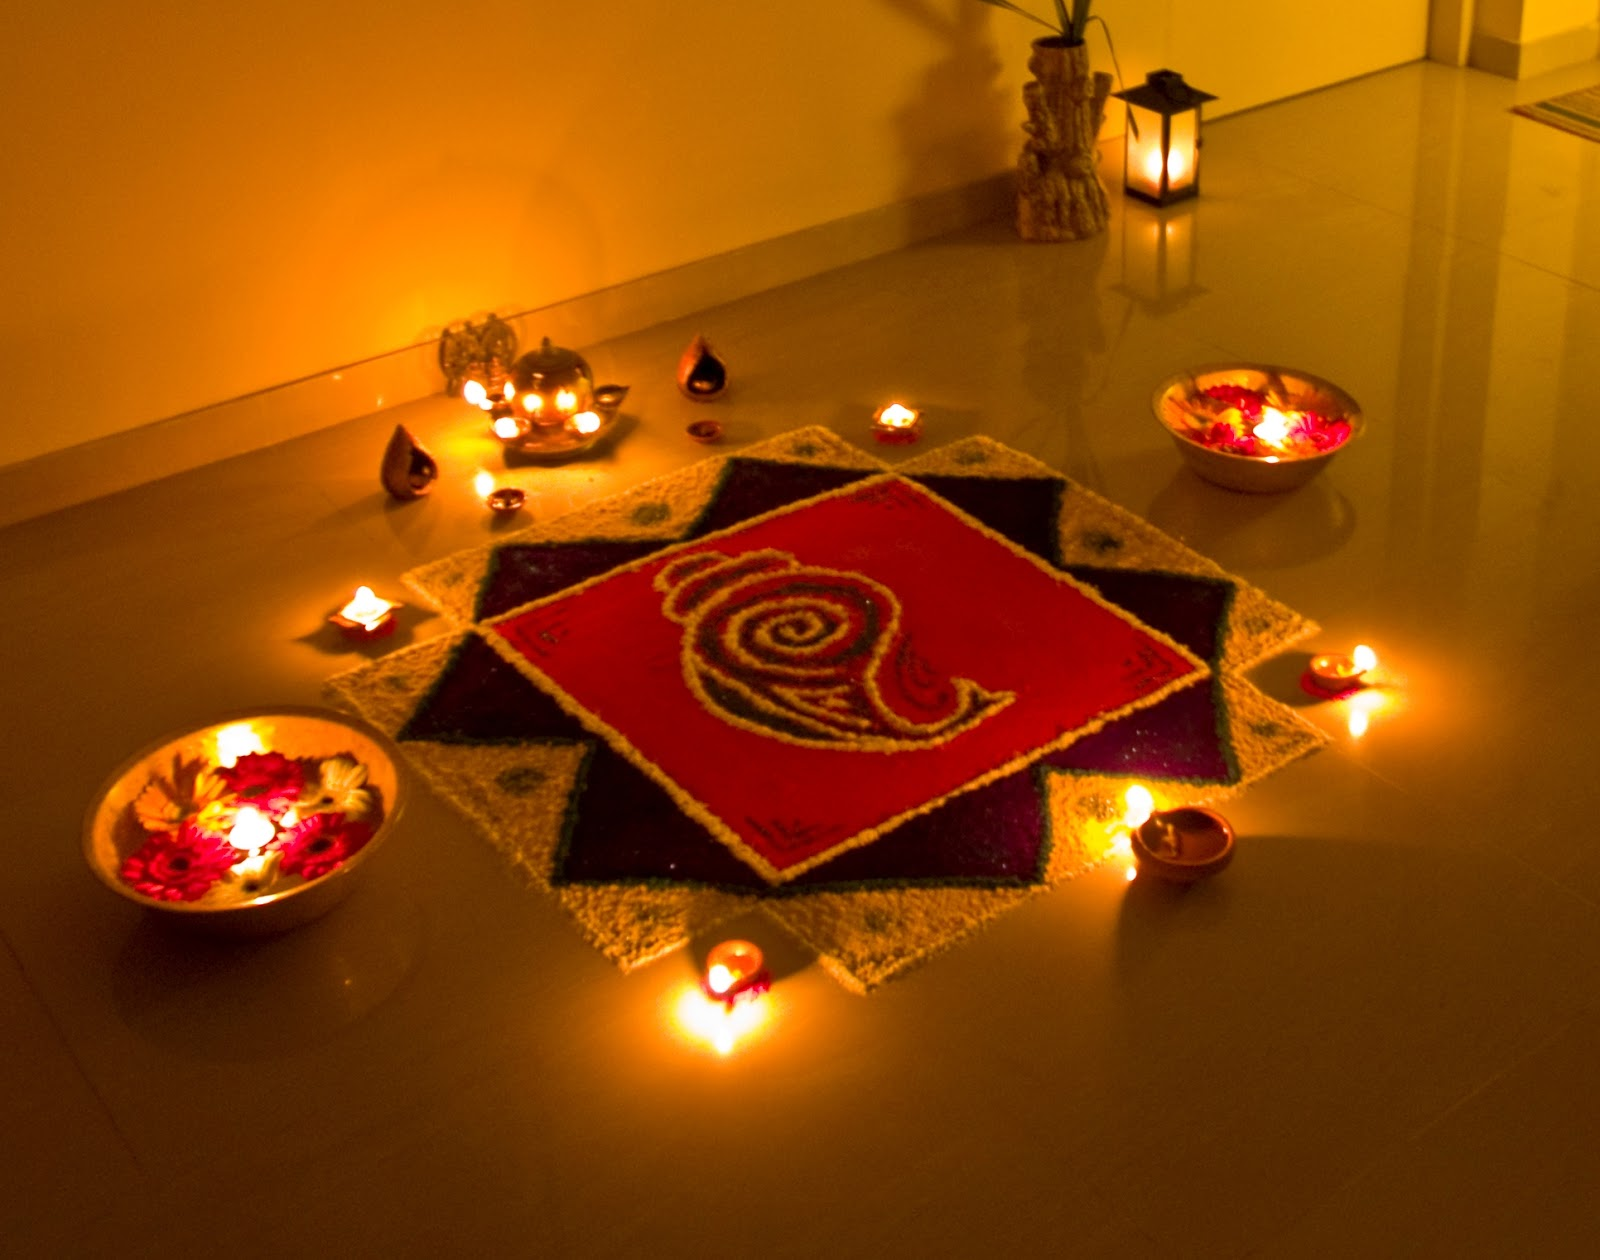 Diwali Lamp Designs Hindu God Wallpaper God Photo Festival And Events